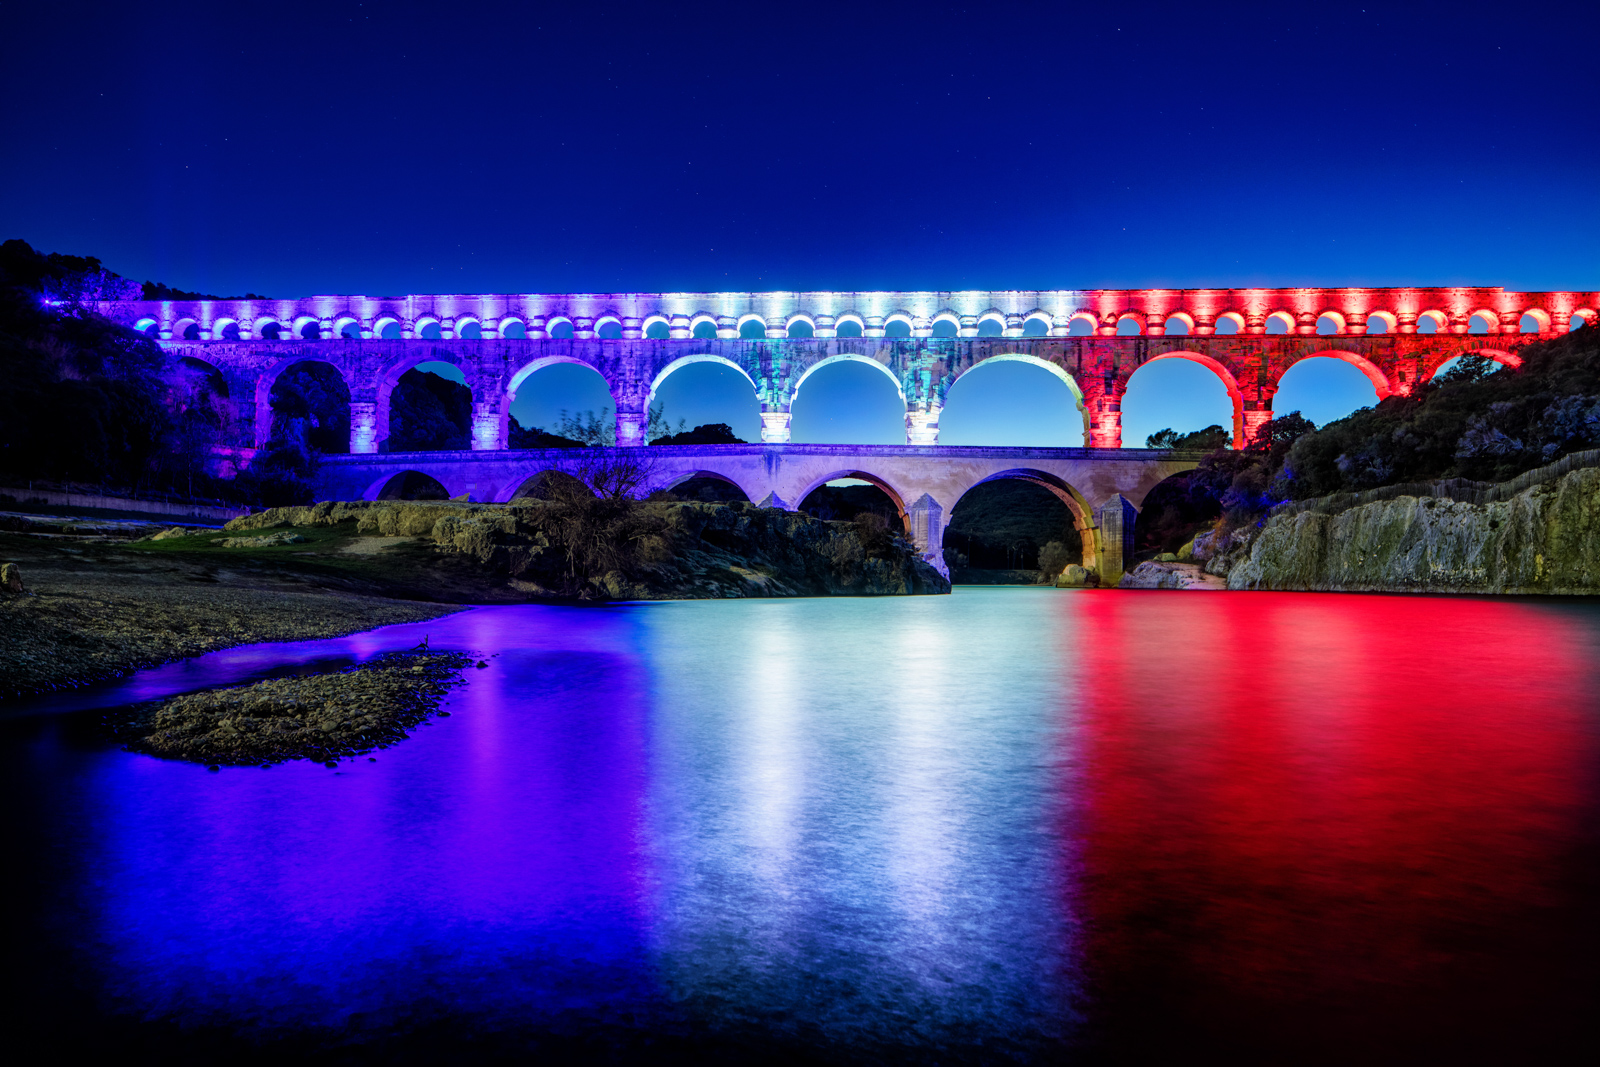 Pont du Gard lit in the french tricolore